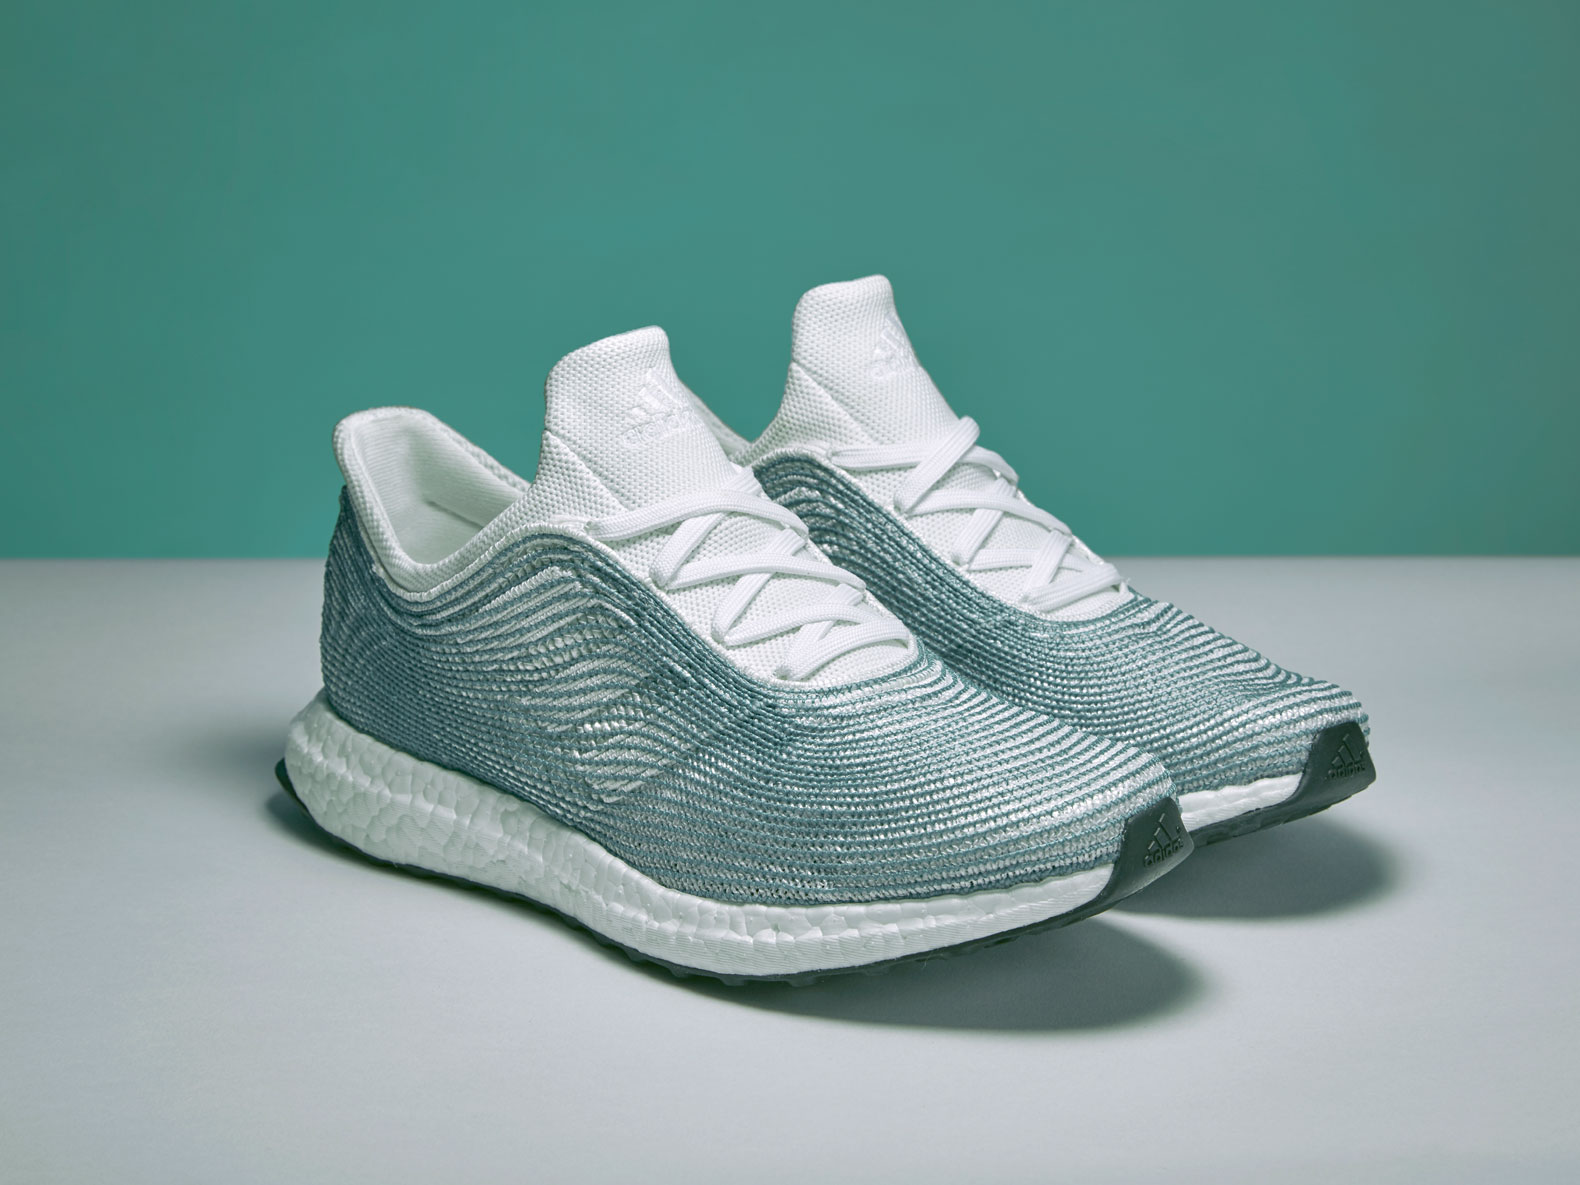 Adidas Parley Giving Away 50 Pairs Of Shoes Made From Ocean Plastic